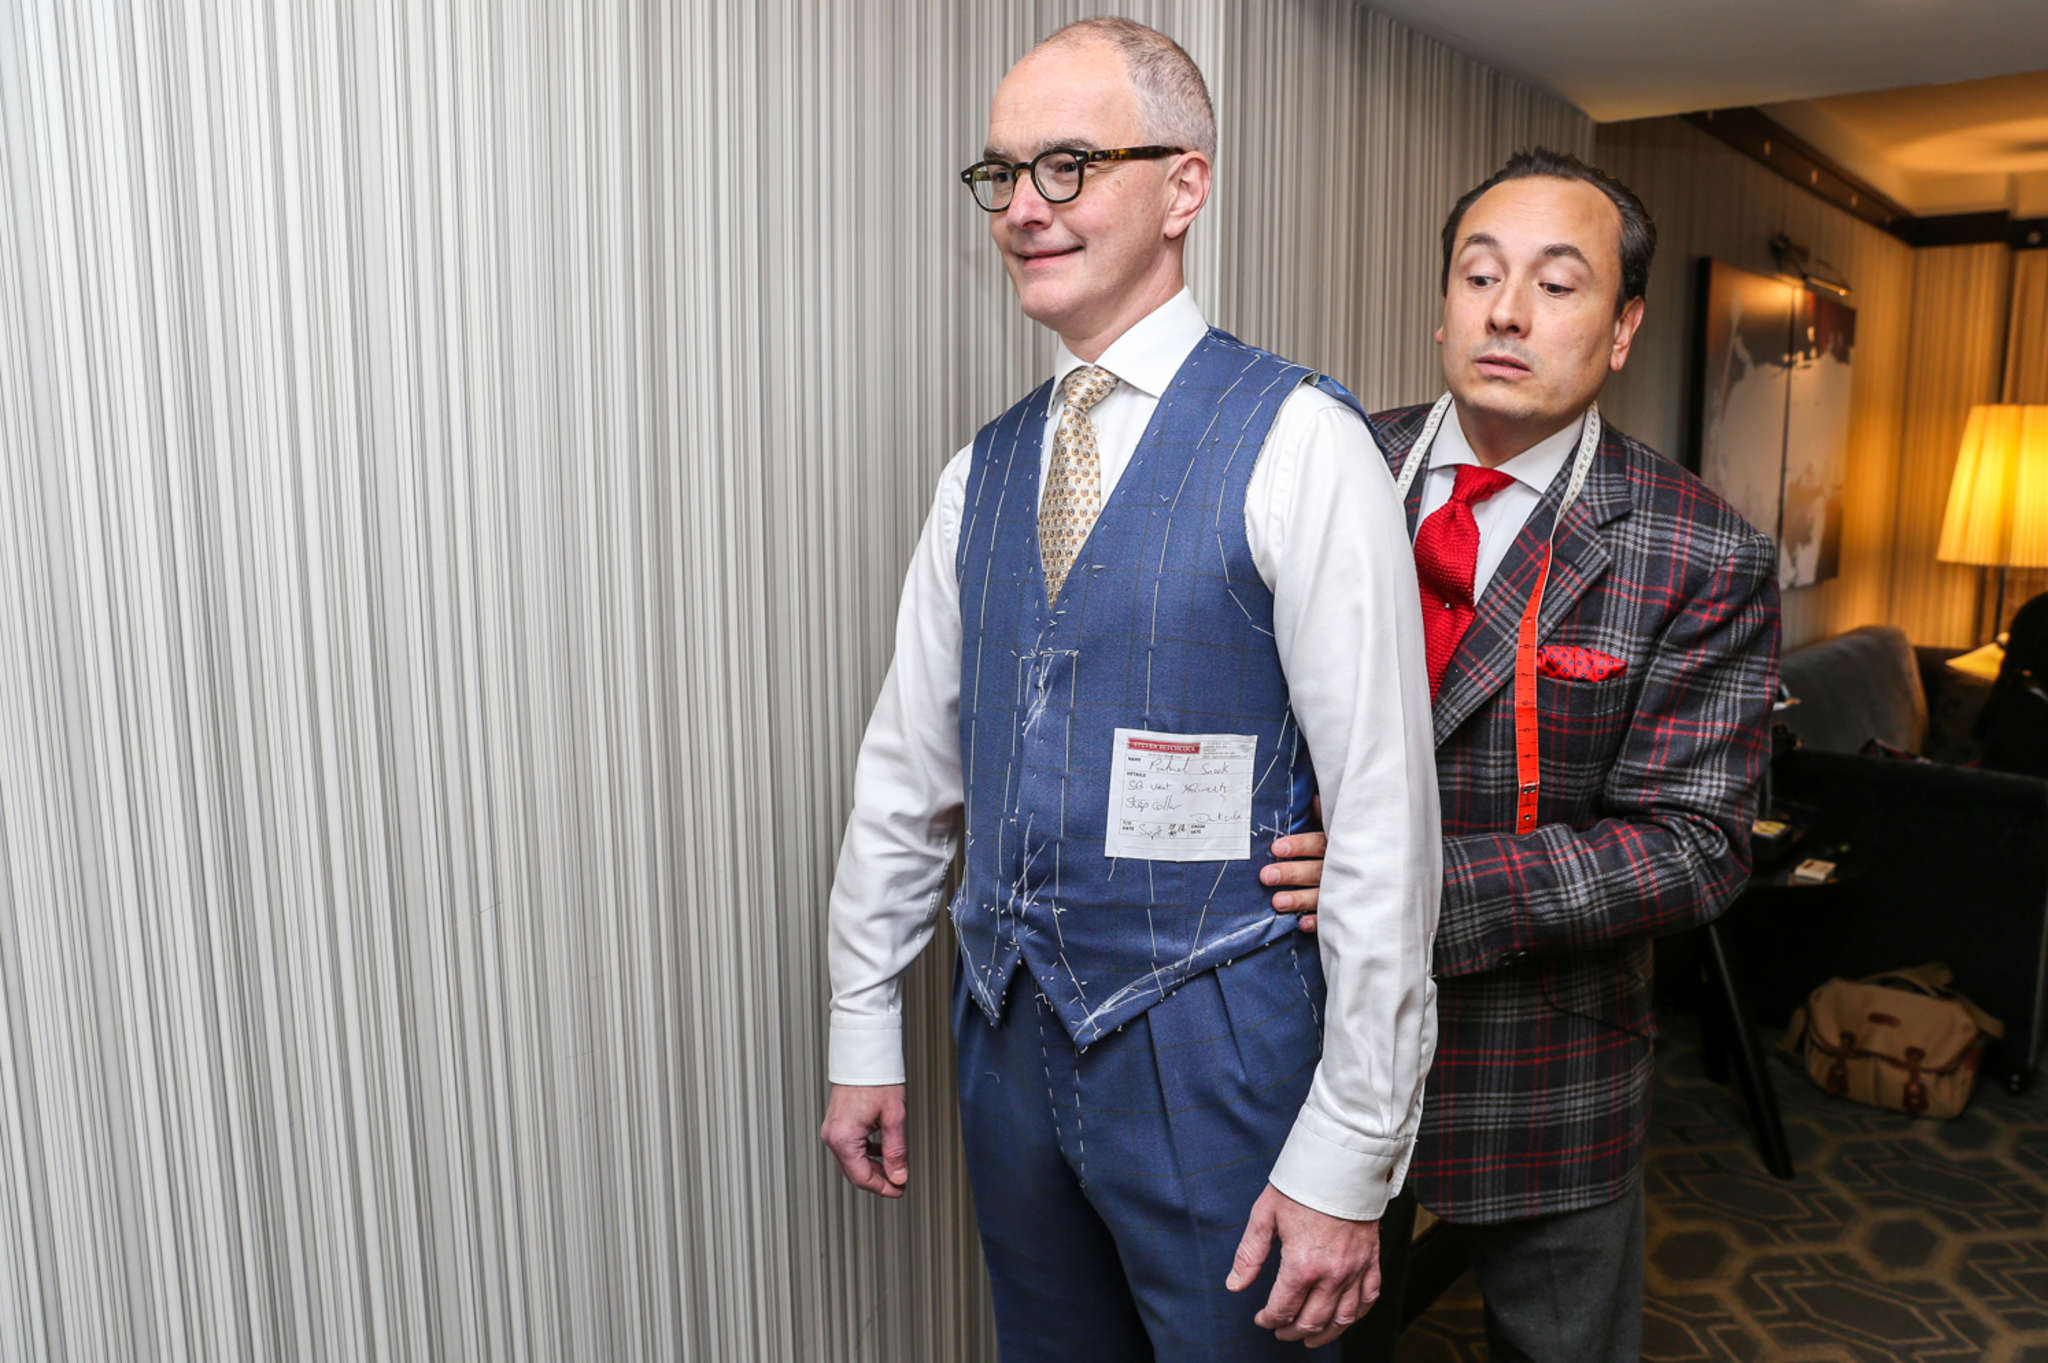 Master tailor Steven Hitchcock (right) conducts a suit fitting with photographer Patrick Snook.